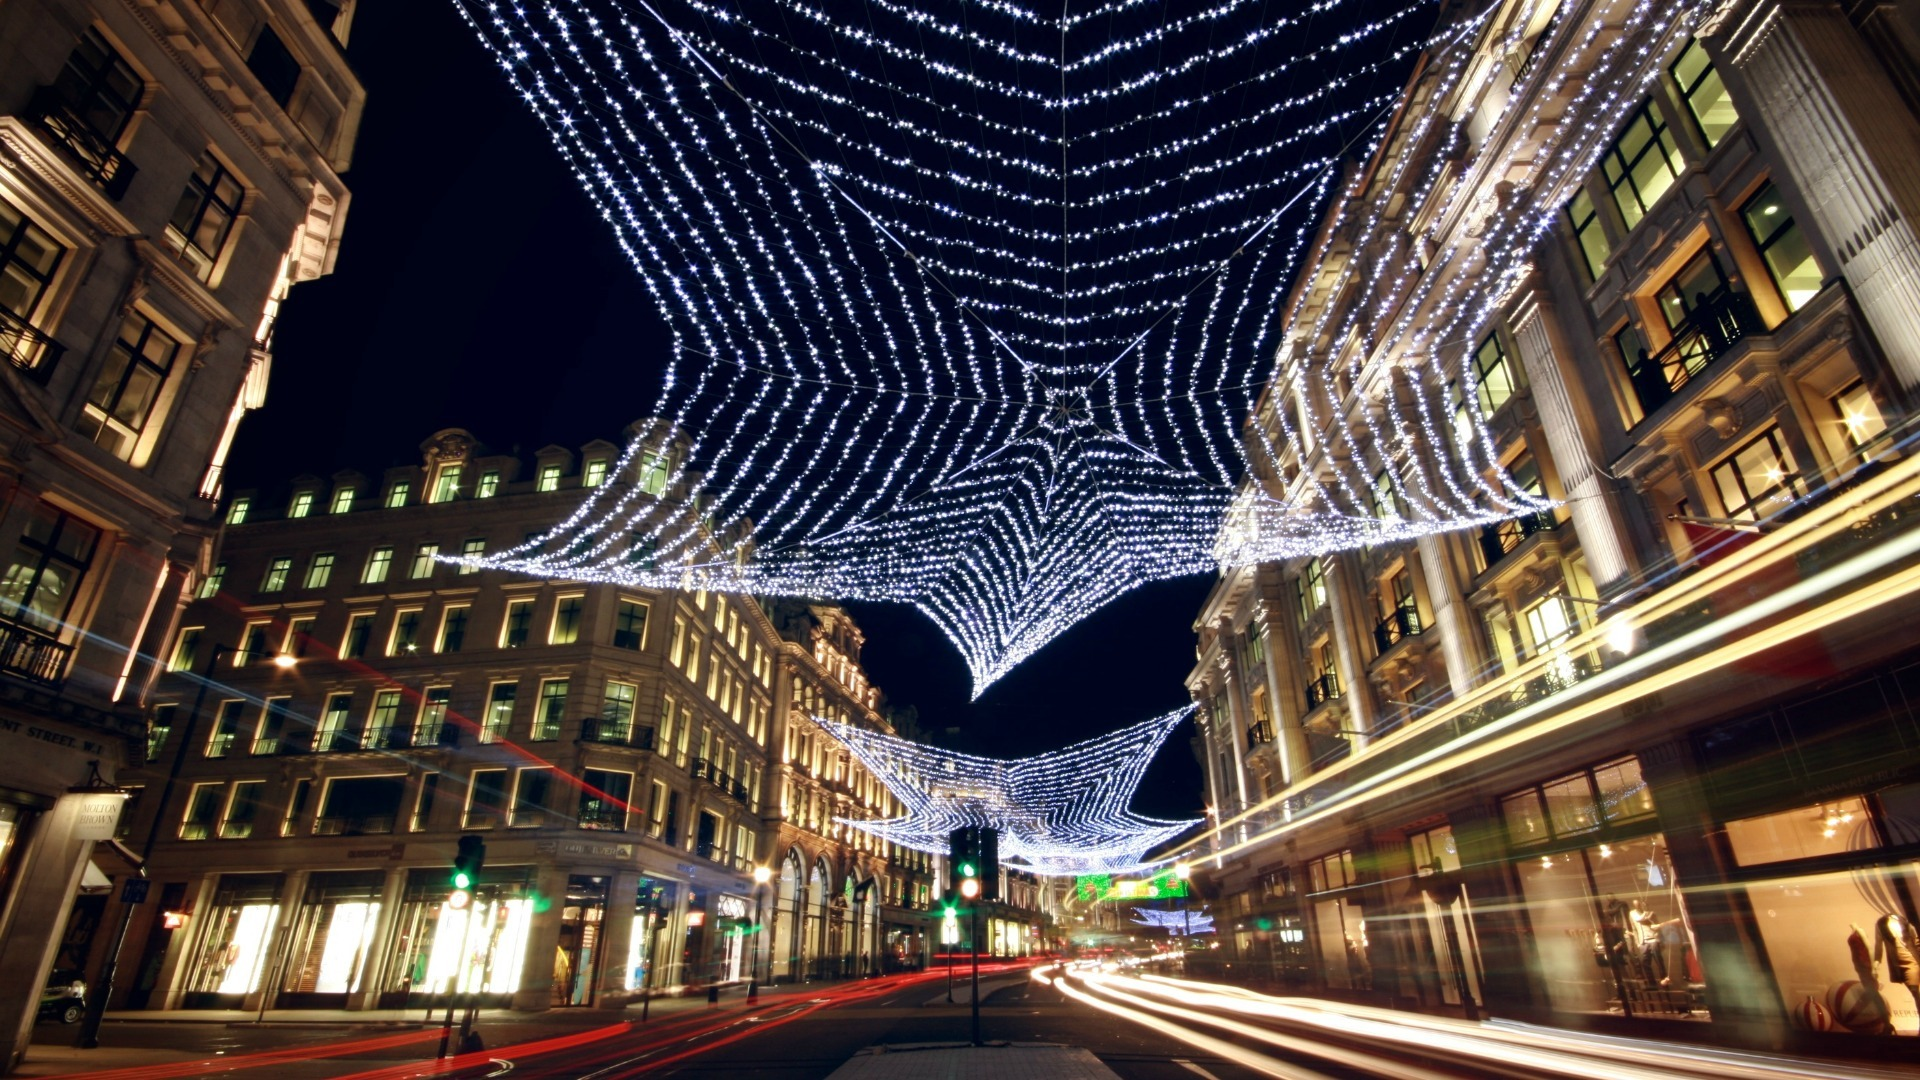 Regent Street Christmas decorations are lovely, but also cause for concern